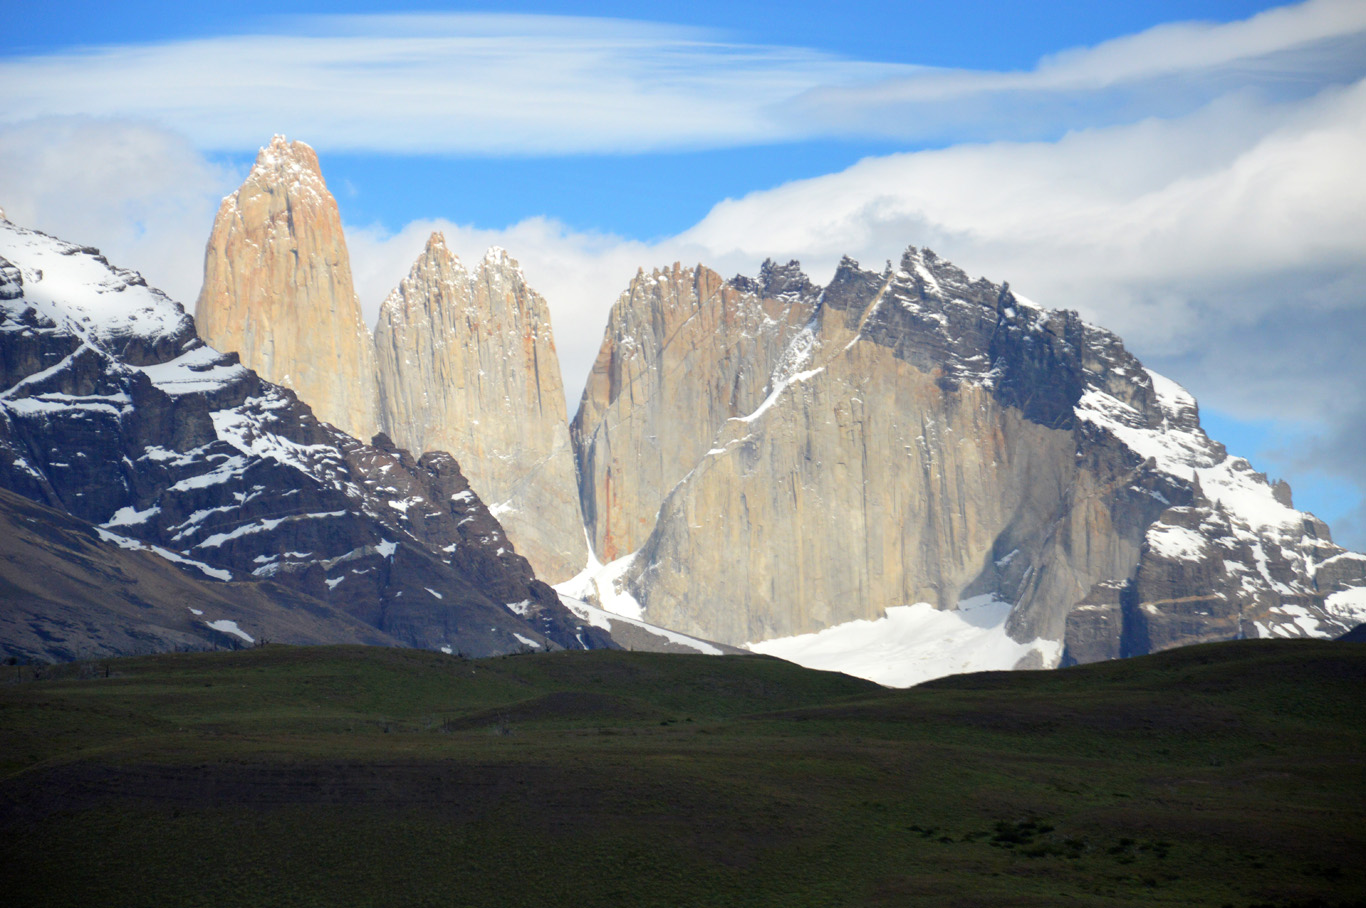 The three towers of Torres del Paine seen from the Amarga Entrance - we saw them closely on the last, third day